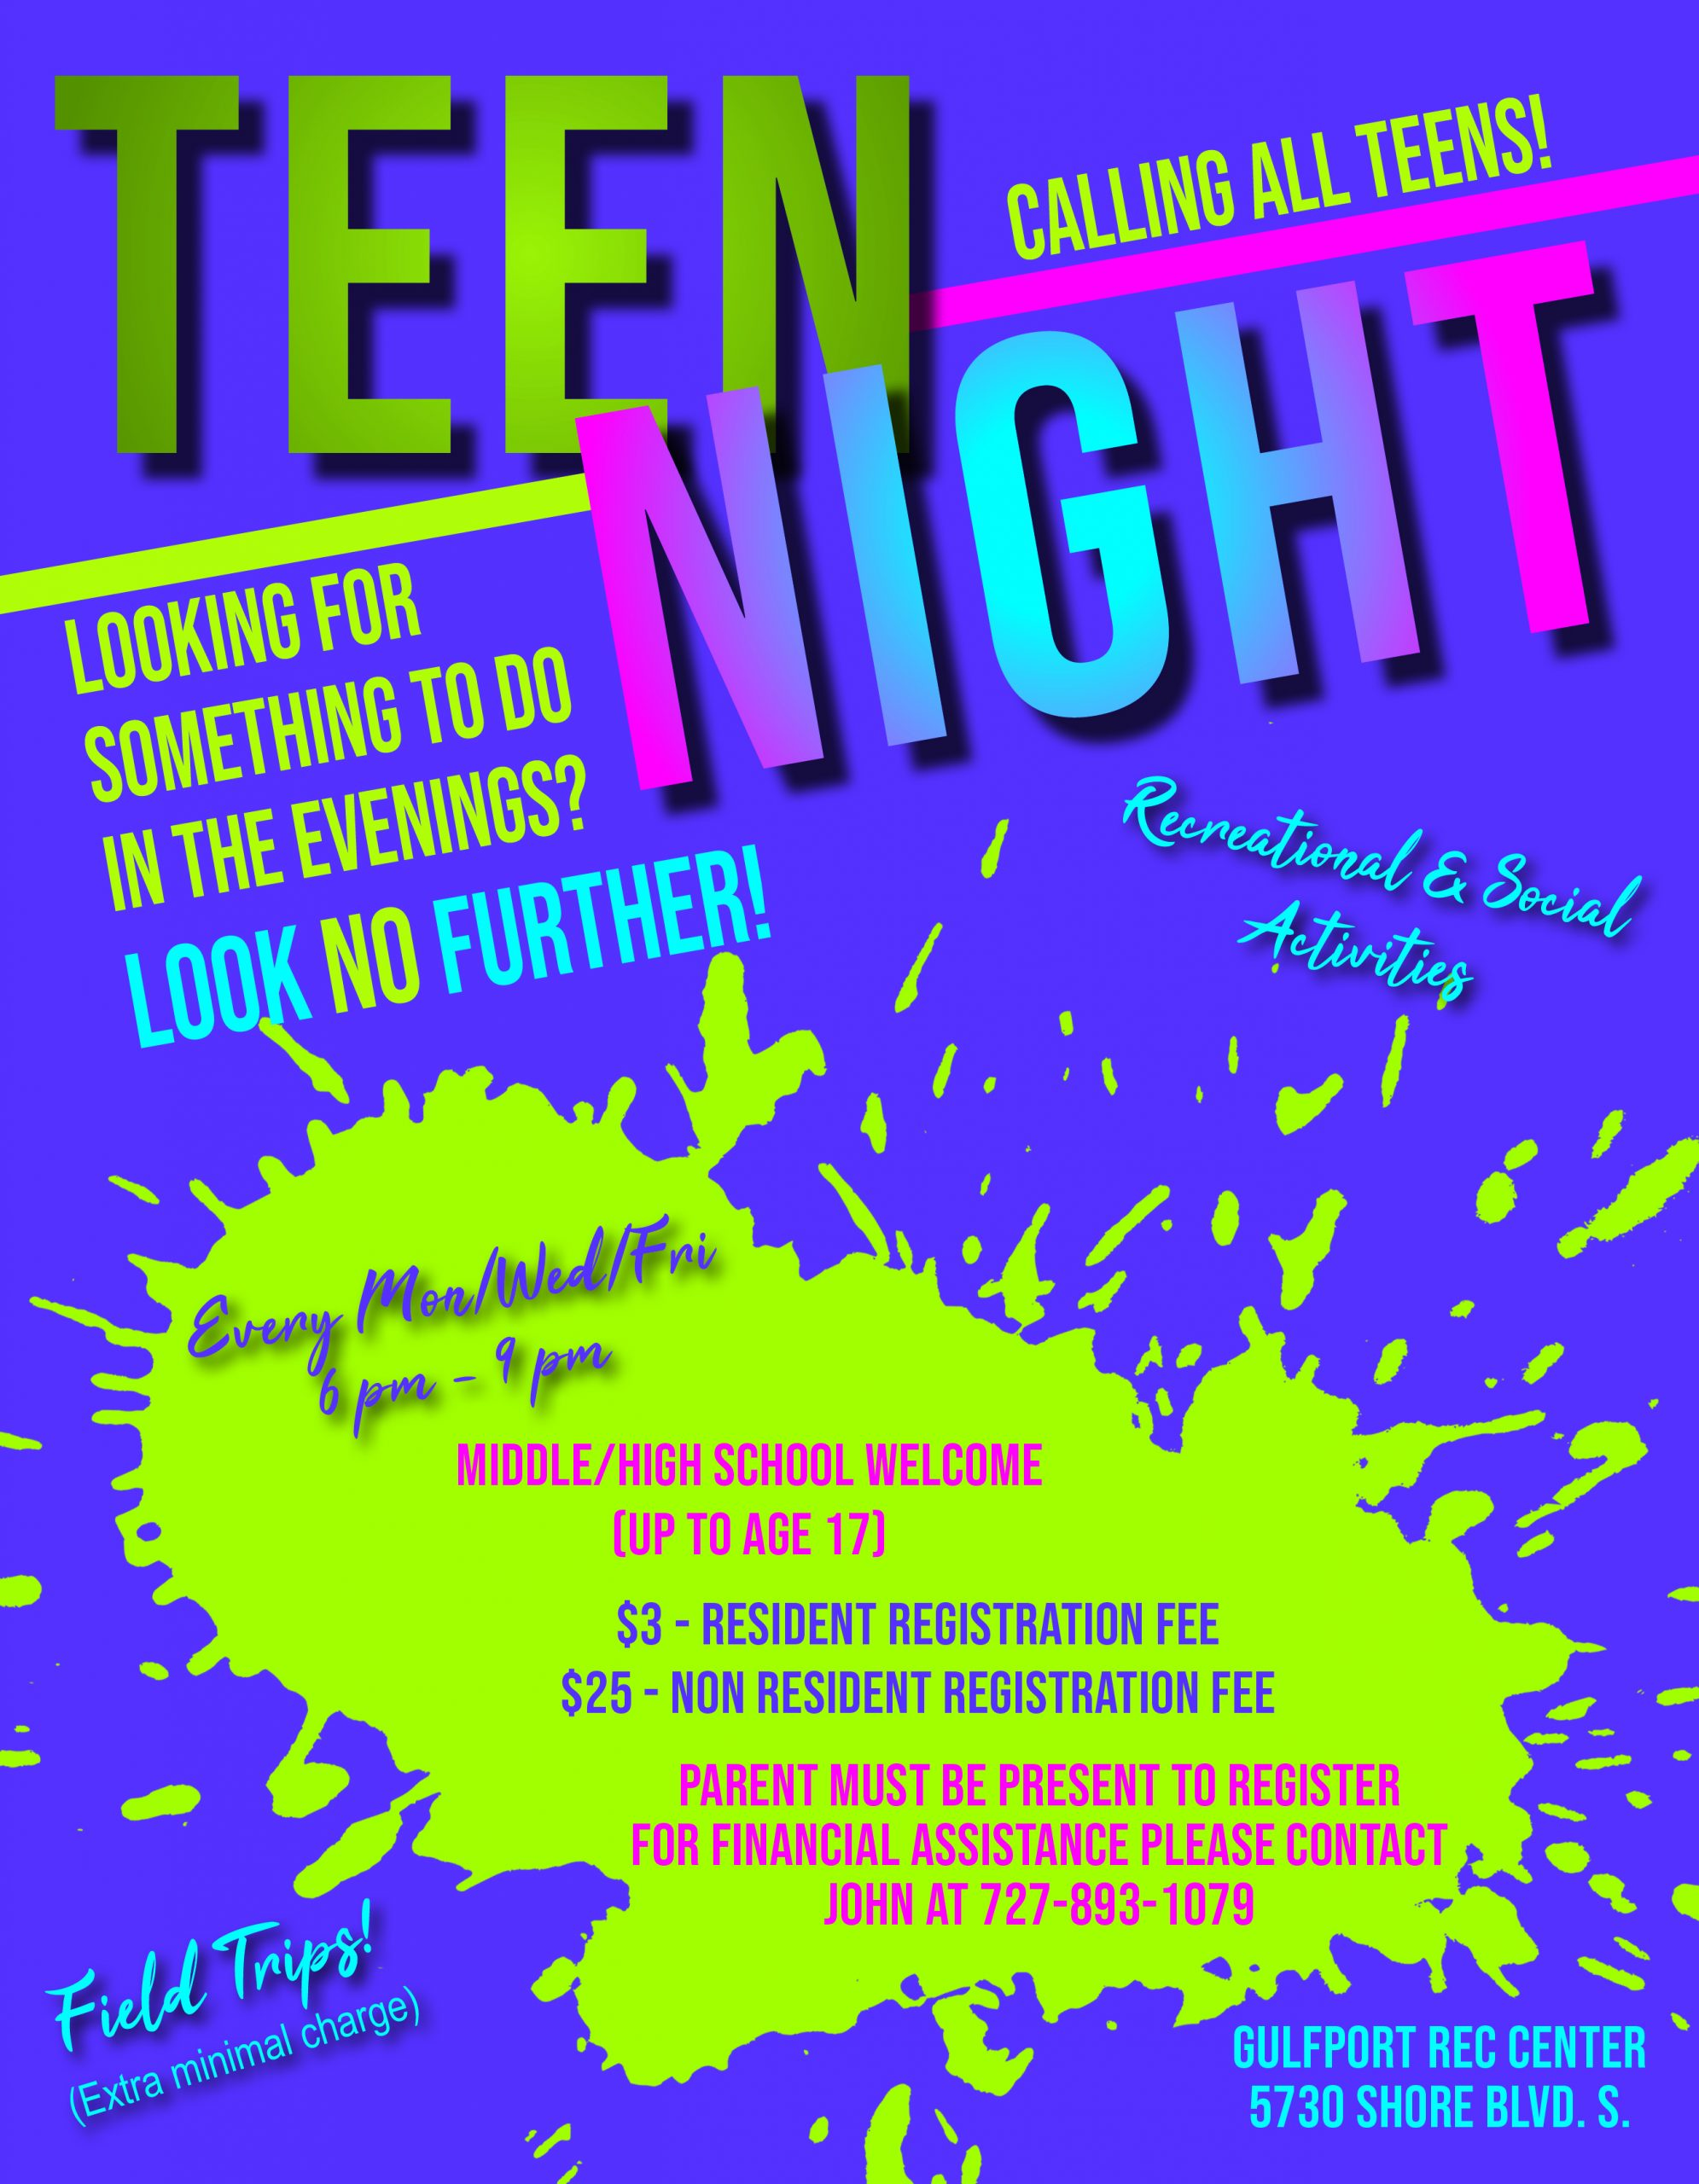 Flyer for Monday, Wednesday and Friday 6PM Teen Night